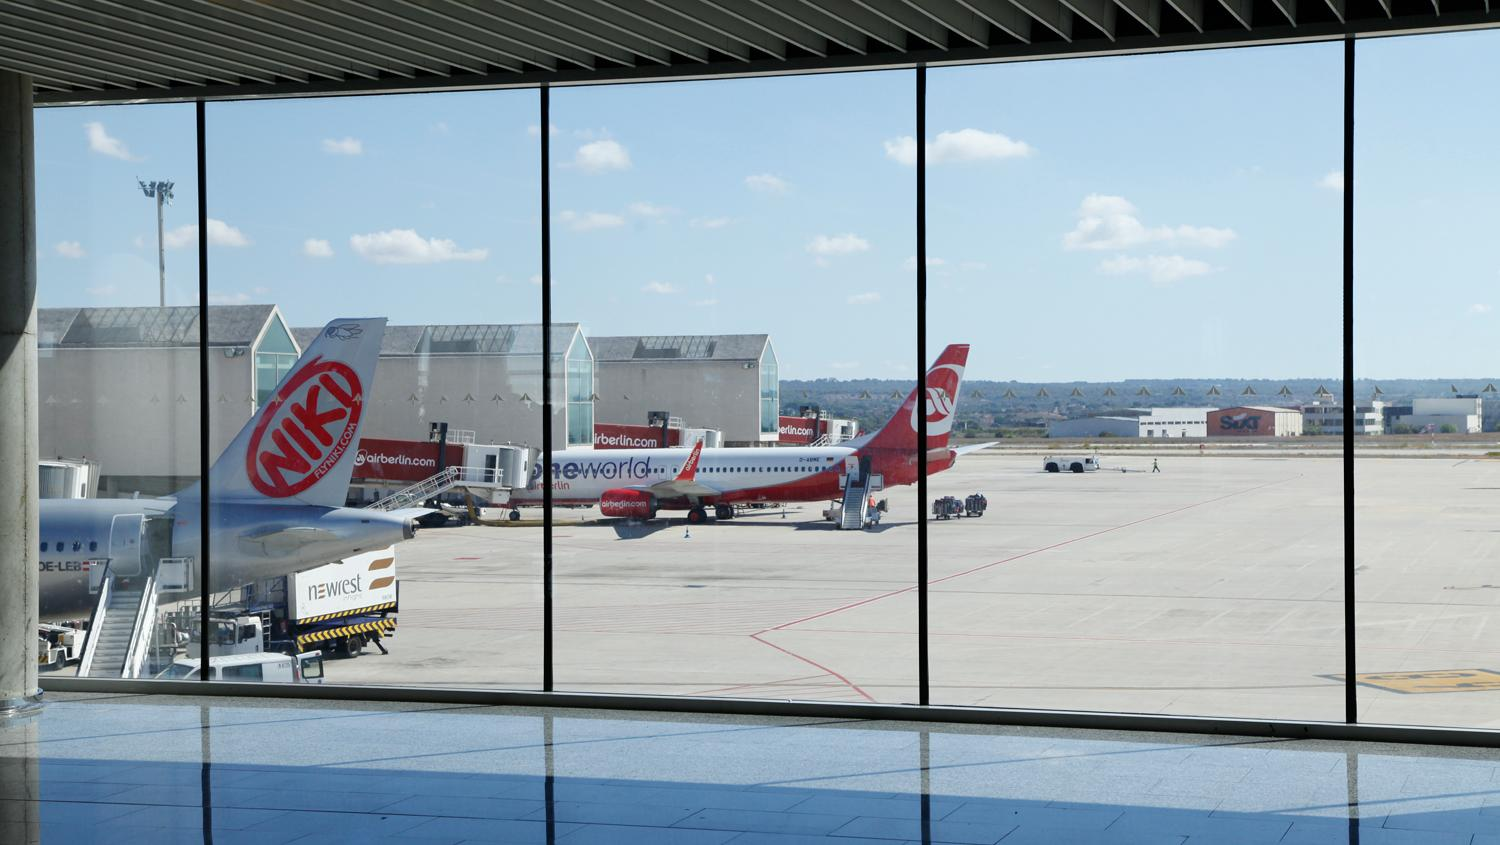 Niki is market leader at Palma airport after taking over Air Berlin's Mallorca flights.